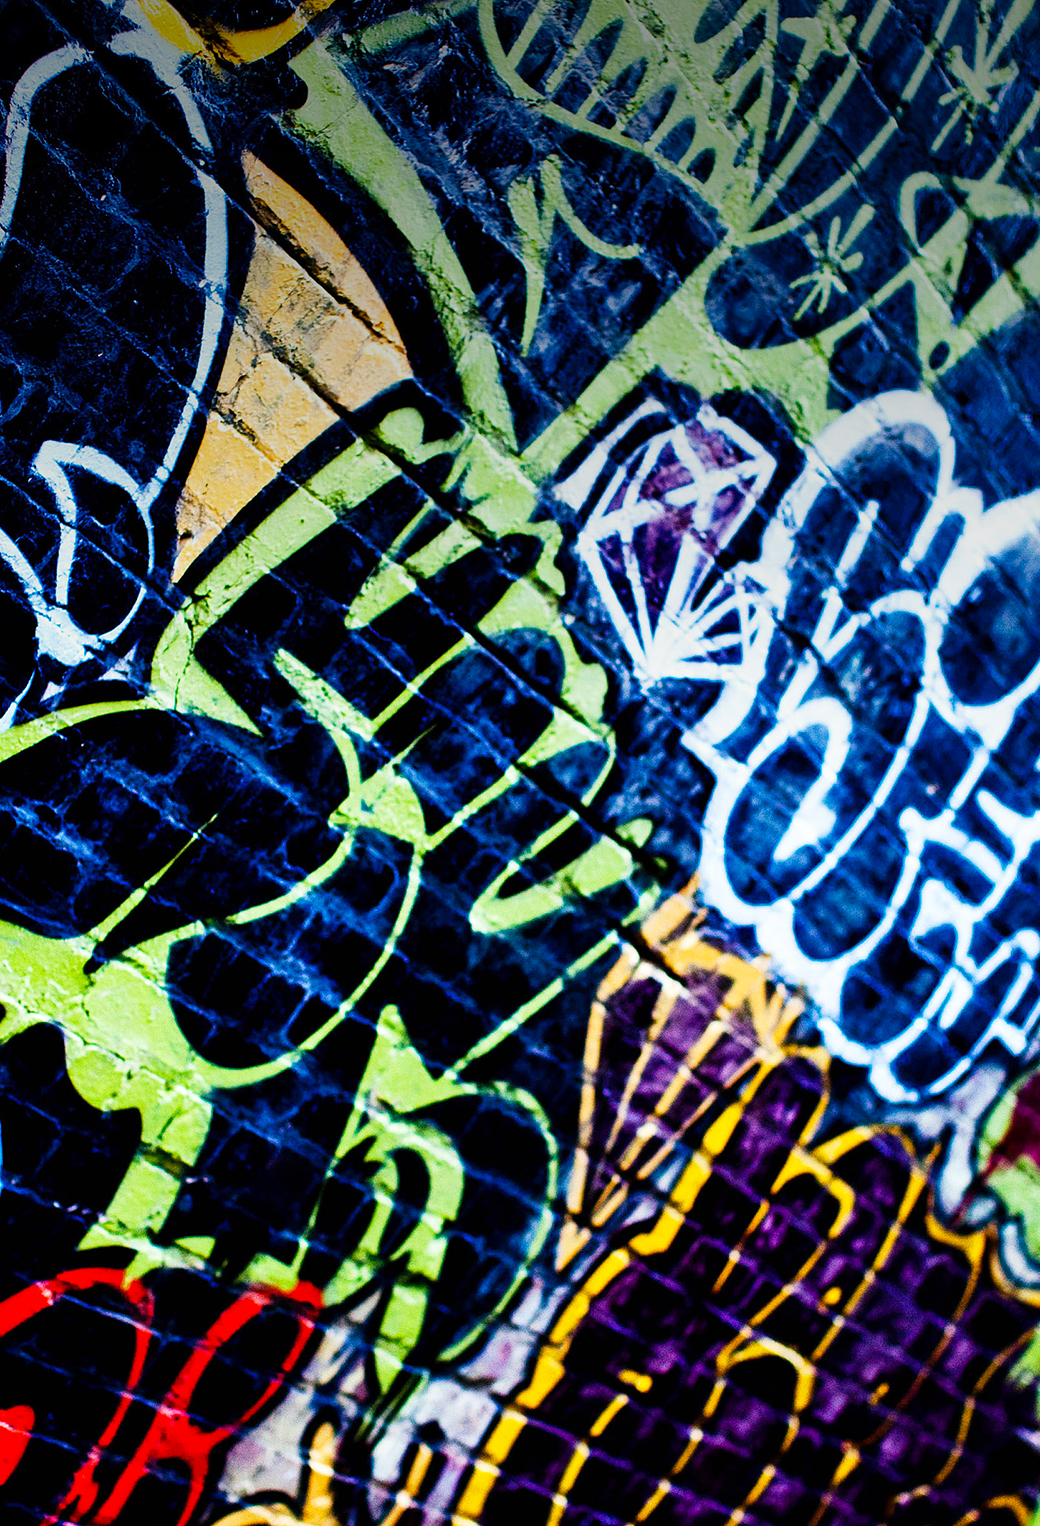 Graffiti Wallpaper For Iphone X 8 7 6 Free Download On